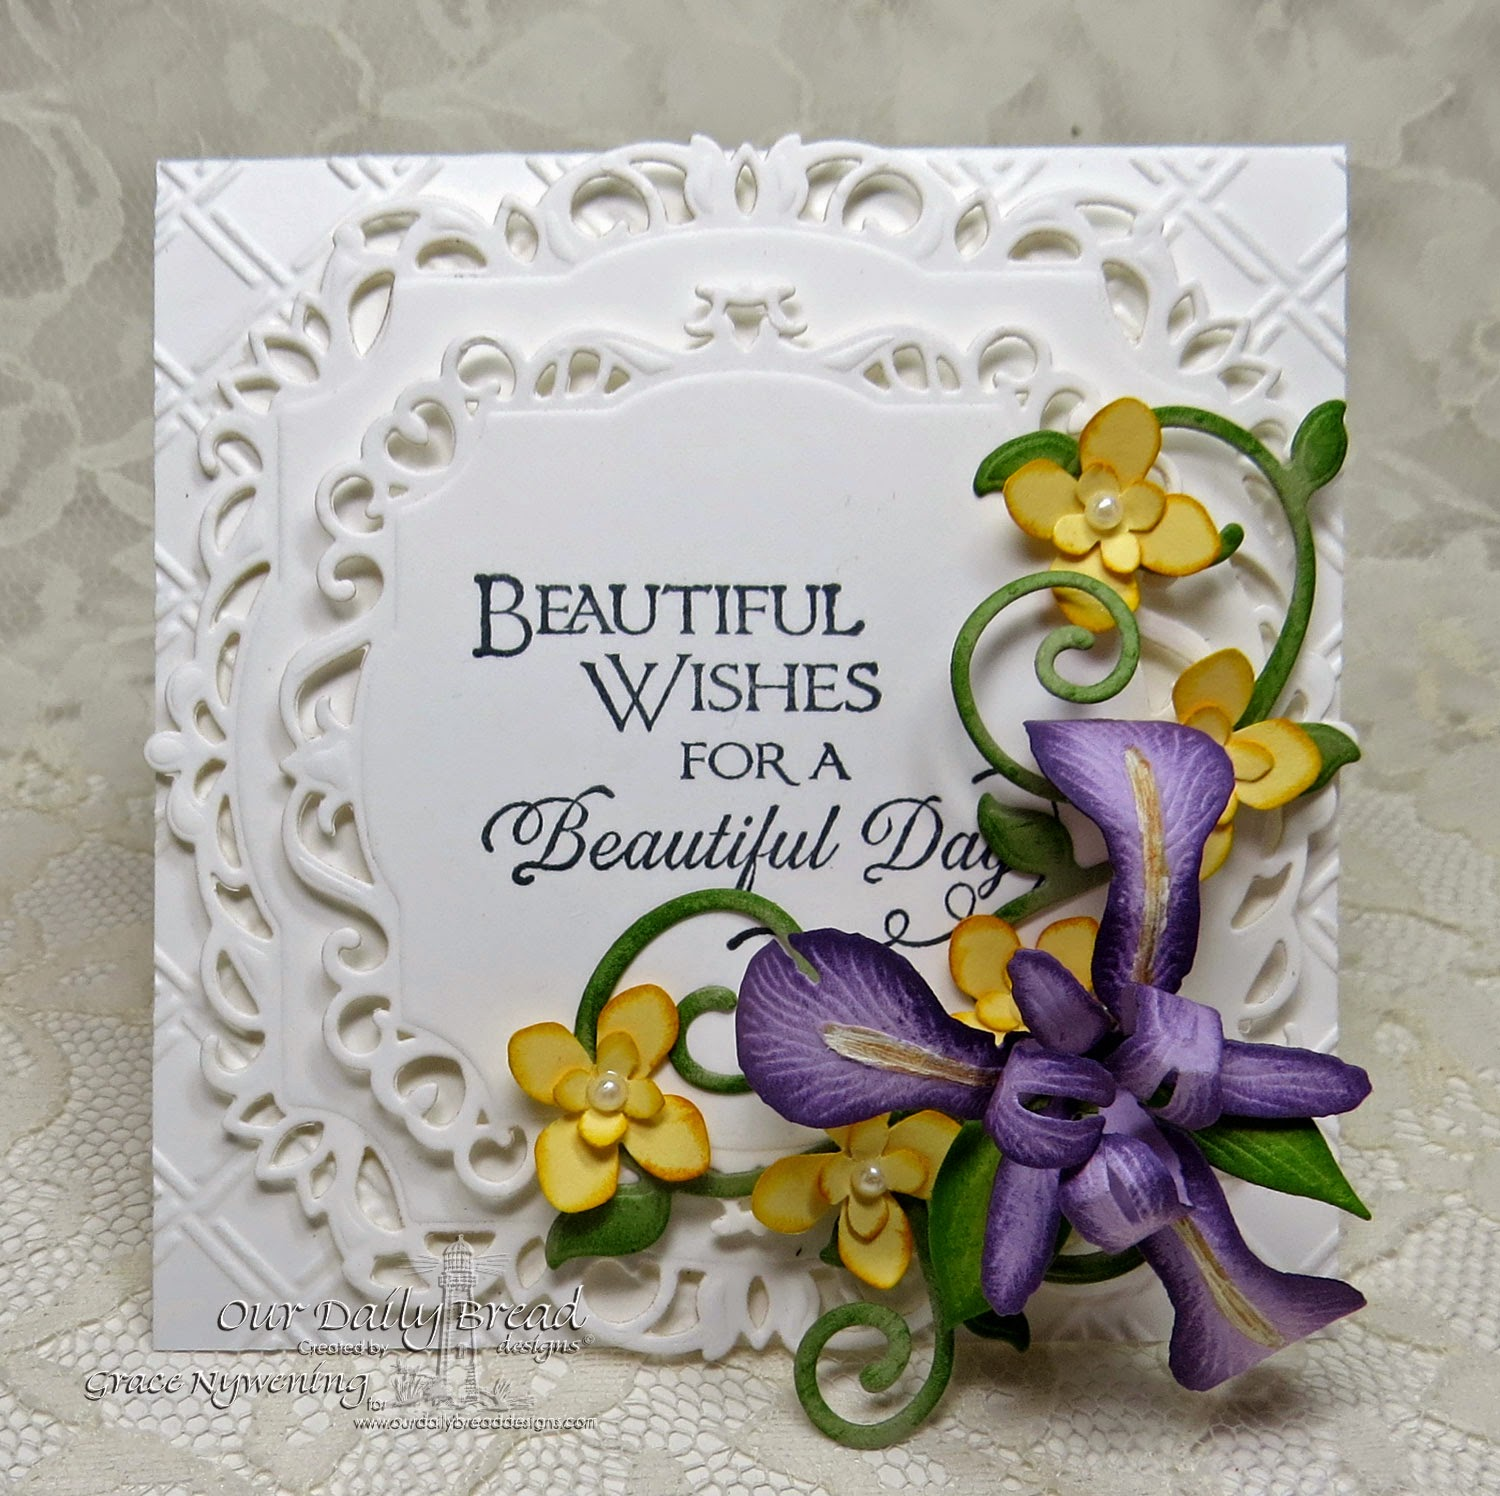 ODBD stamps: Sentiments collection2, Spellbinders Create an Iris die, designed by Grace Nywening